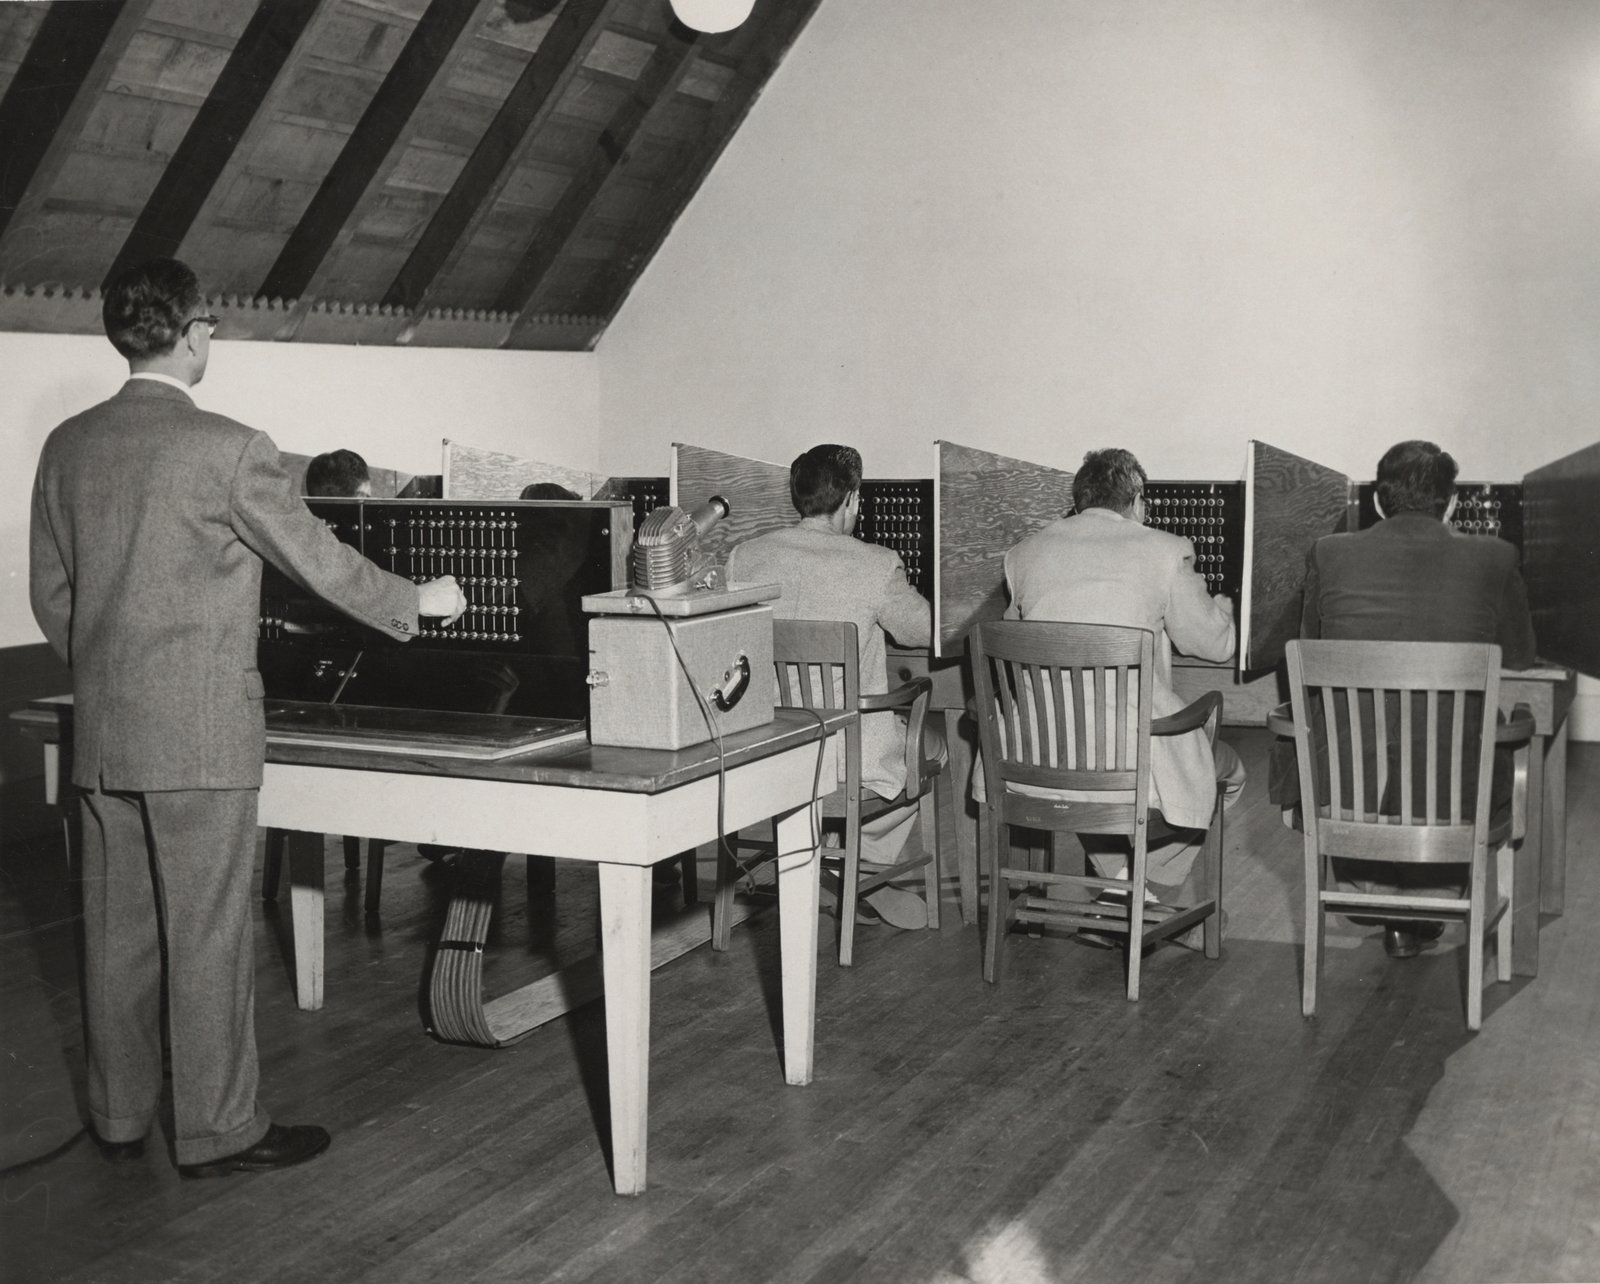 Researchers simulate the Conformity Test. In this scenario, five subjects in private booths estimate distances after a light indicates the other participants' answers—the supplied answers are fake, however, allowing this test to measure the effect of peer pressure on judgment. While Victor Lundy saw through the deception, others deferred to the false responses.  Photo 5 of 14 in This Book Unearths a Midcentury Personality Study on Architectural Giants